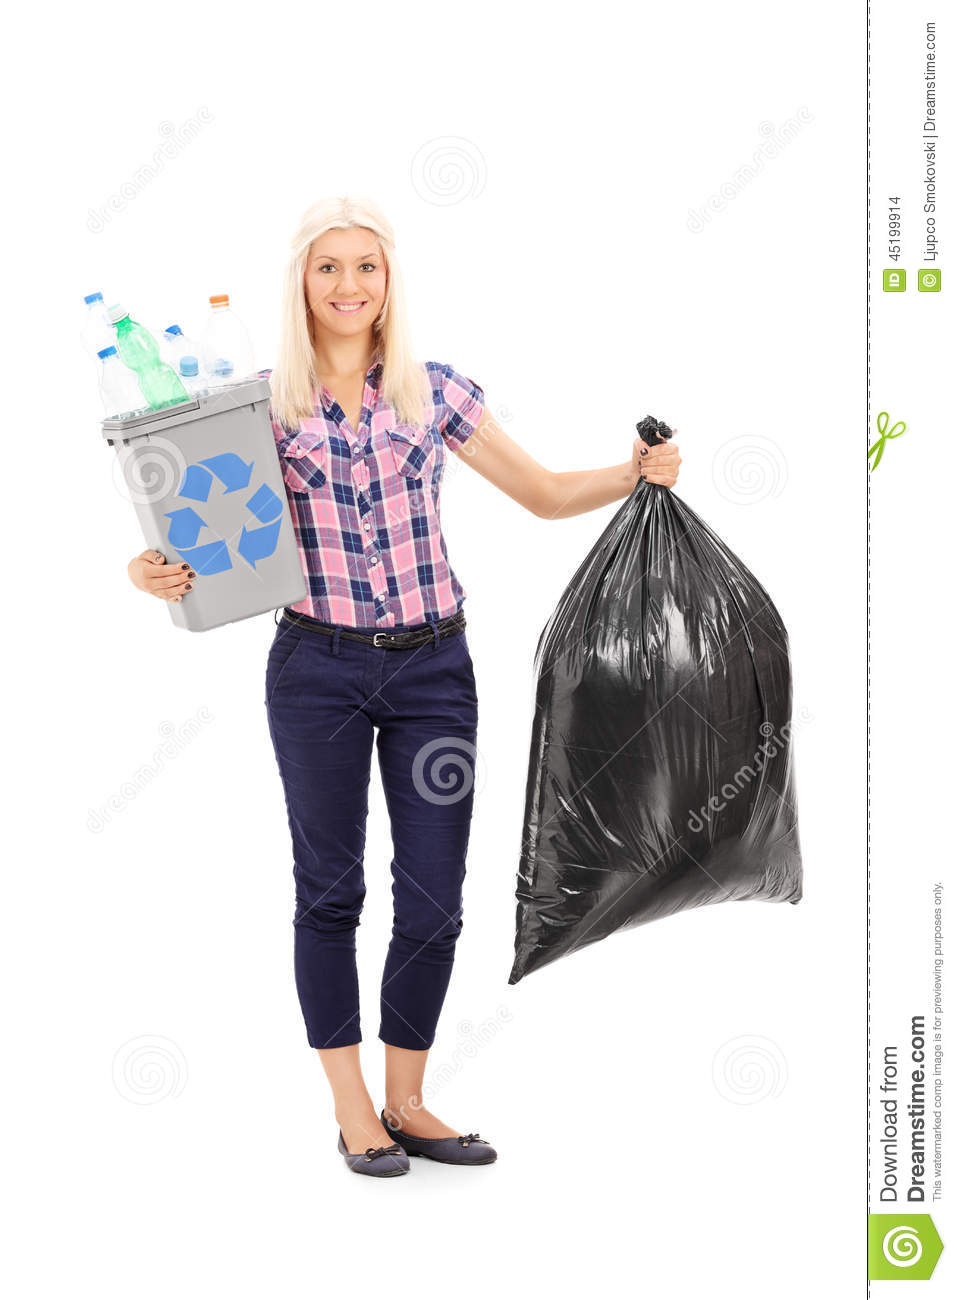 ... holding a recycle bin and a trash bag isolated on white background